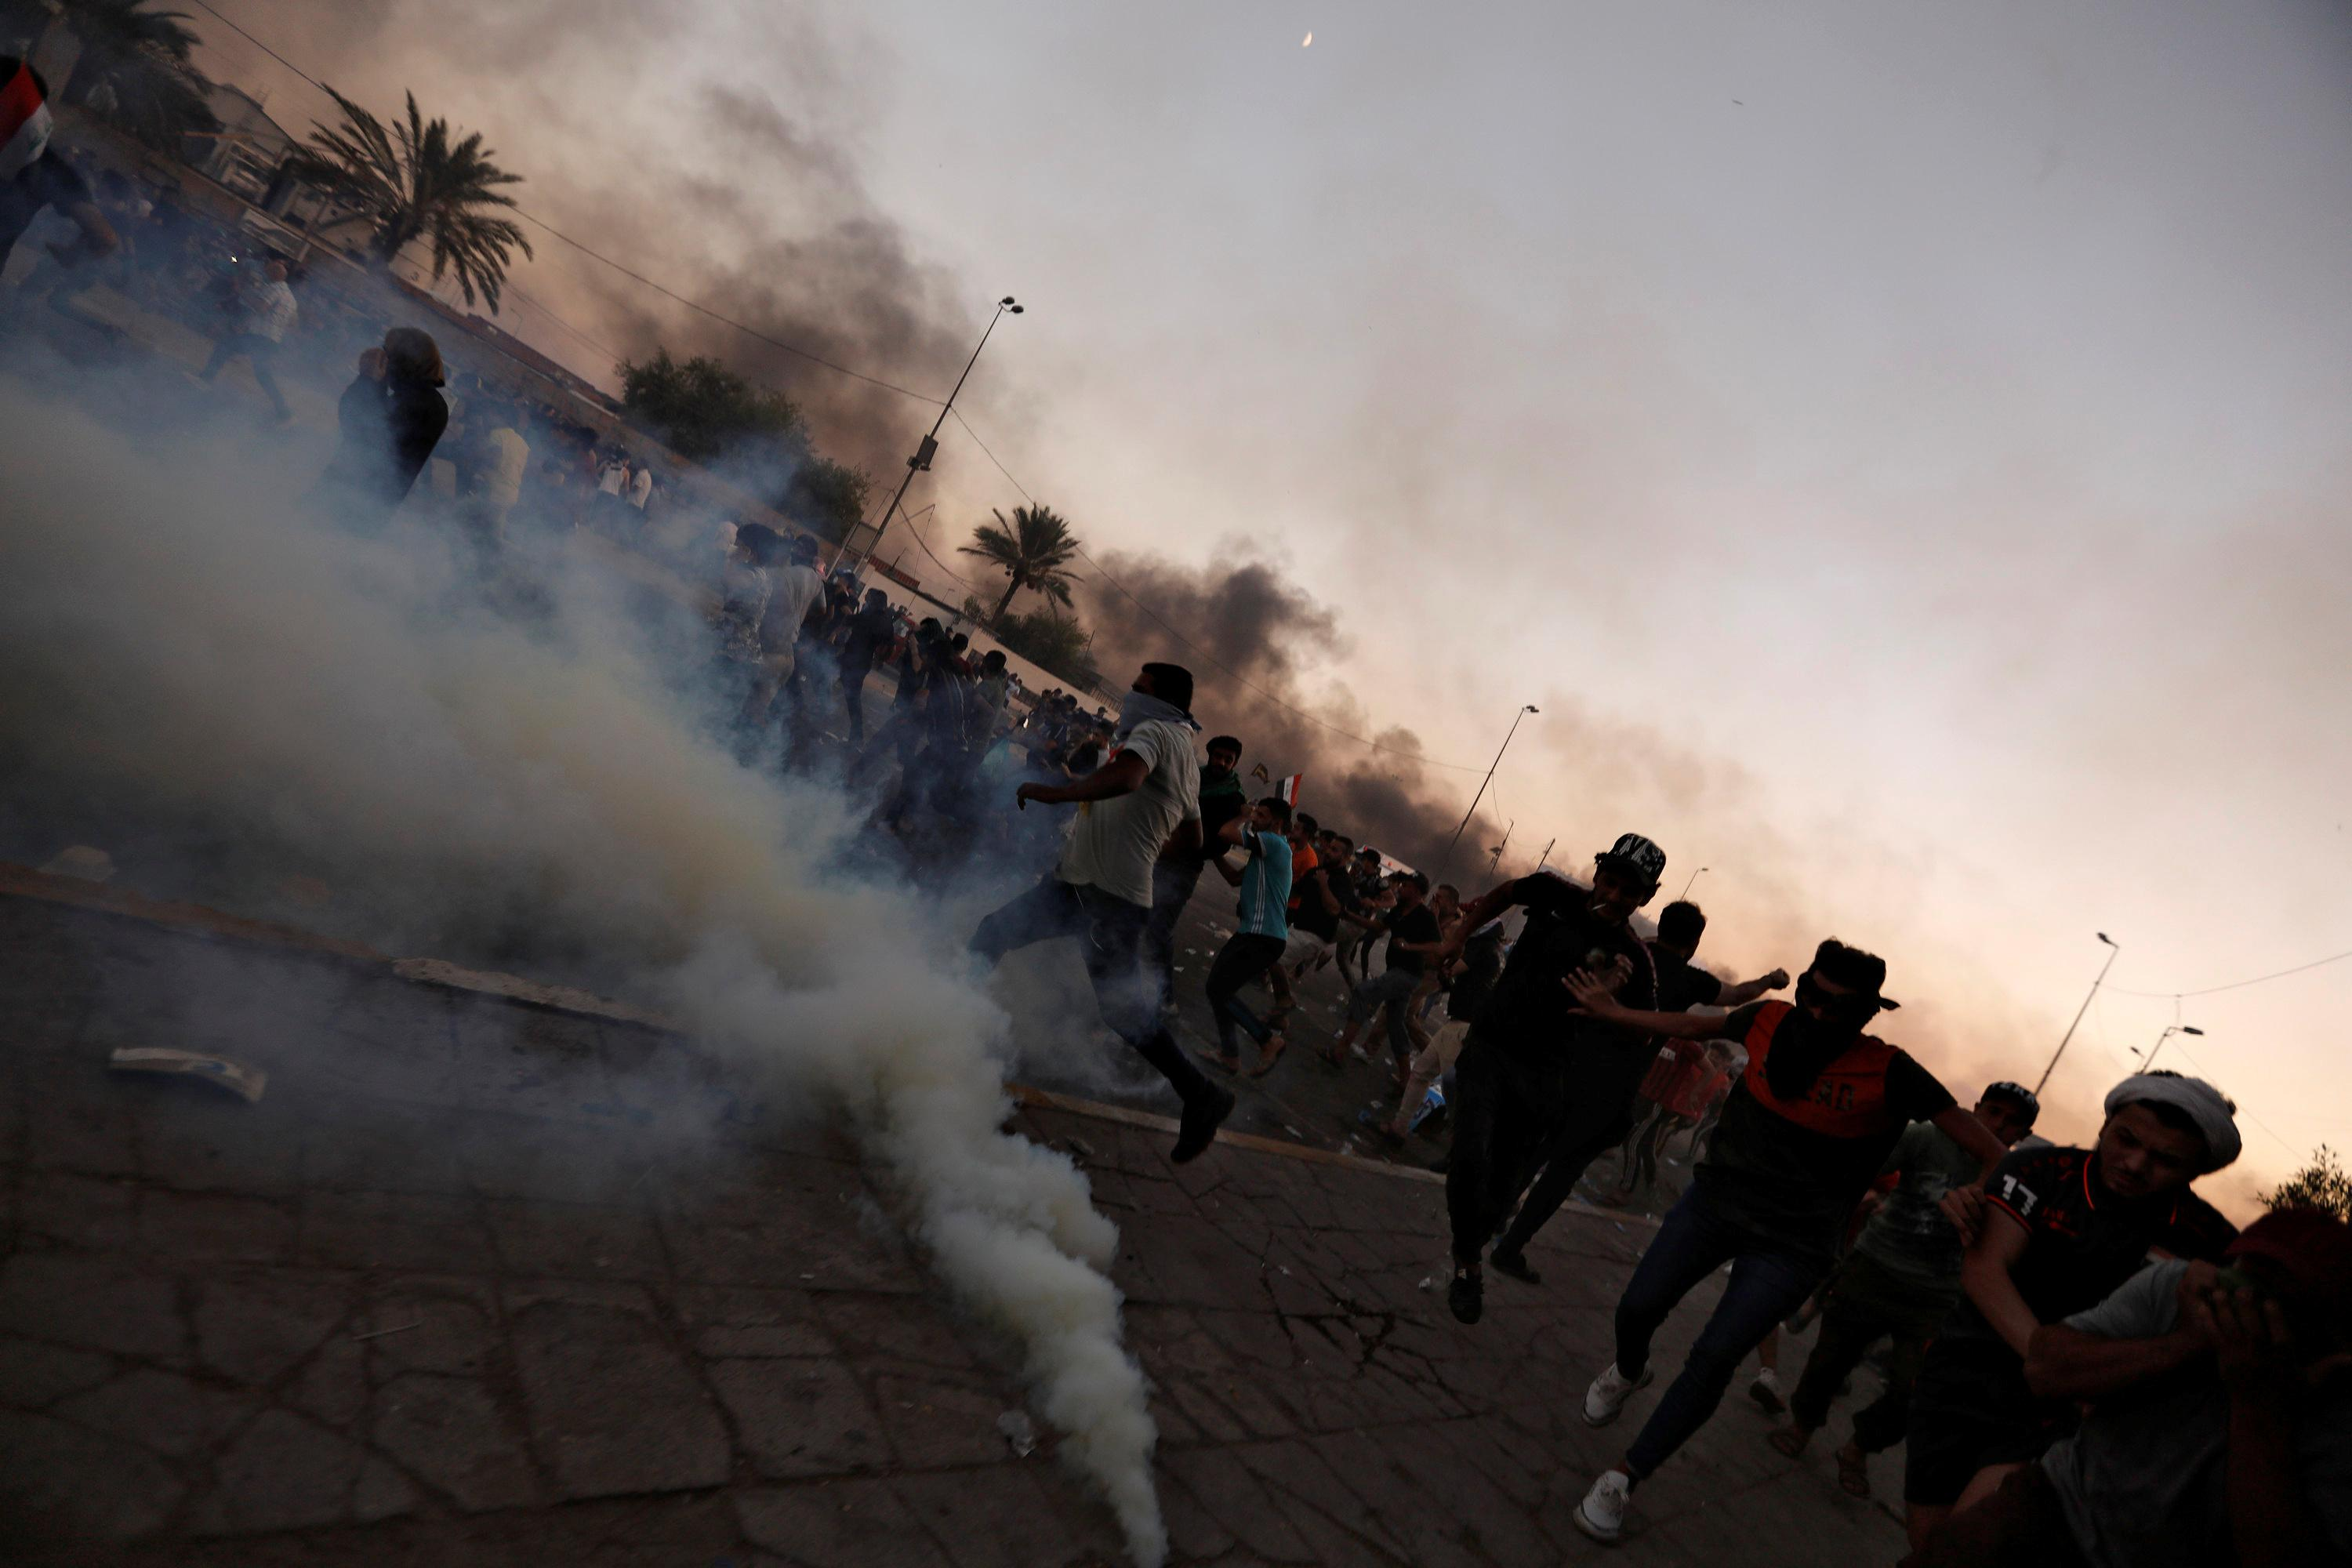 104 people killed in Iraq unrest, 6,000 wounded: Interior Ministry